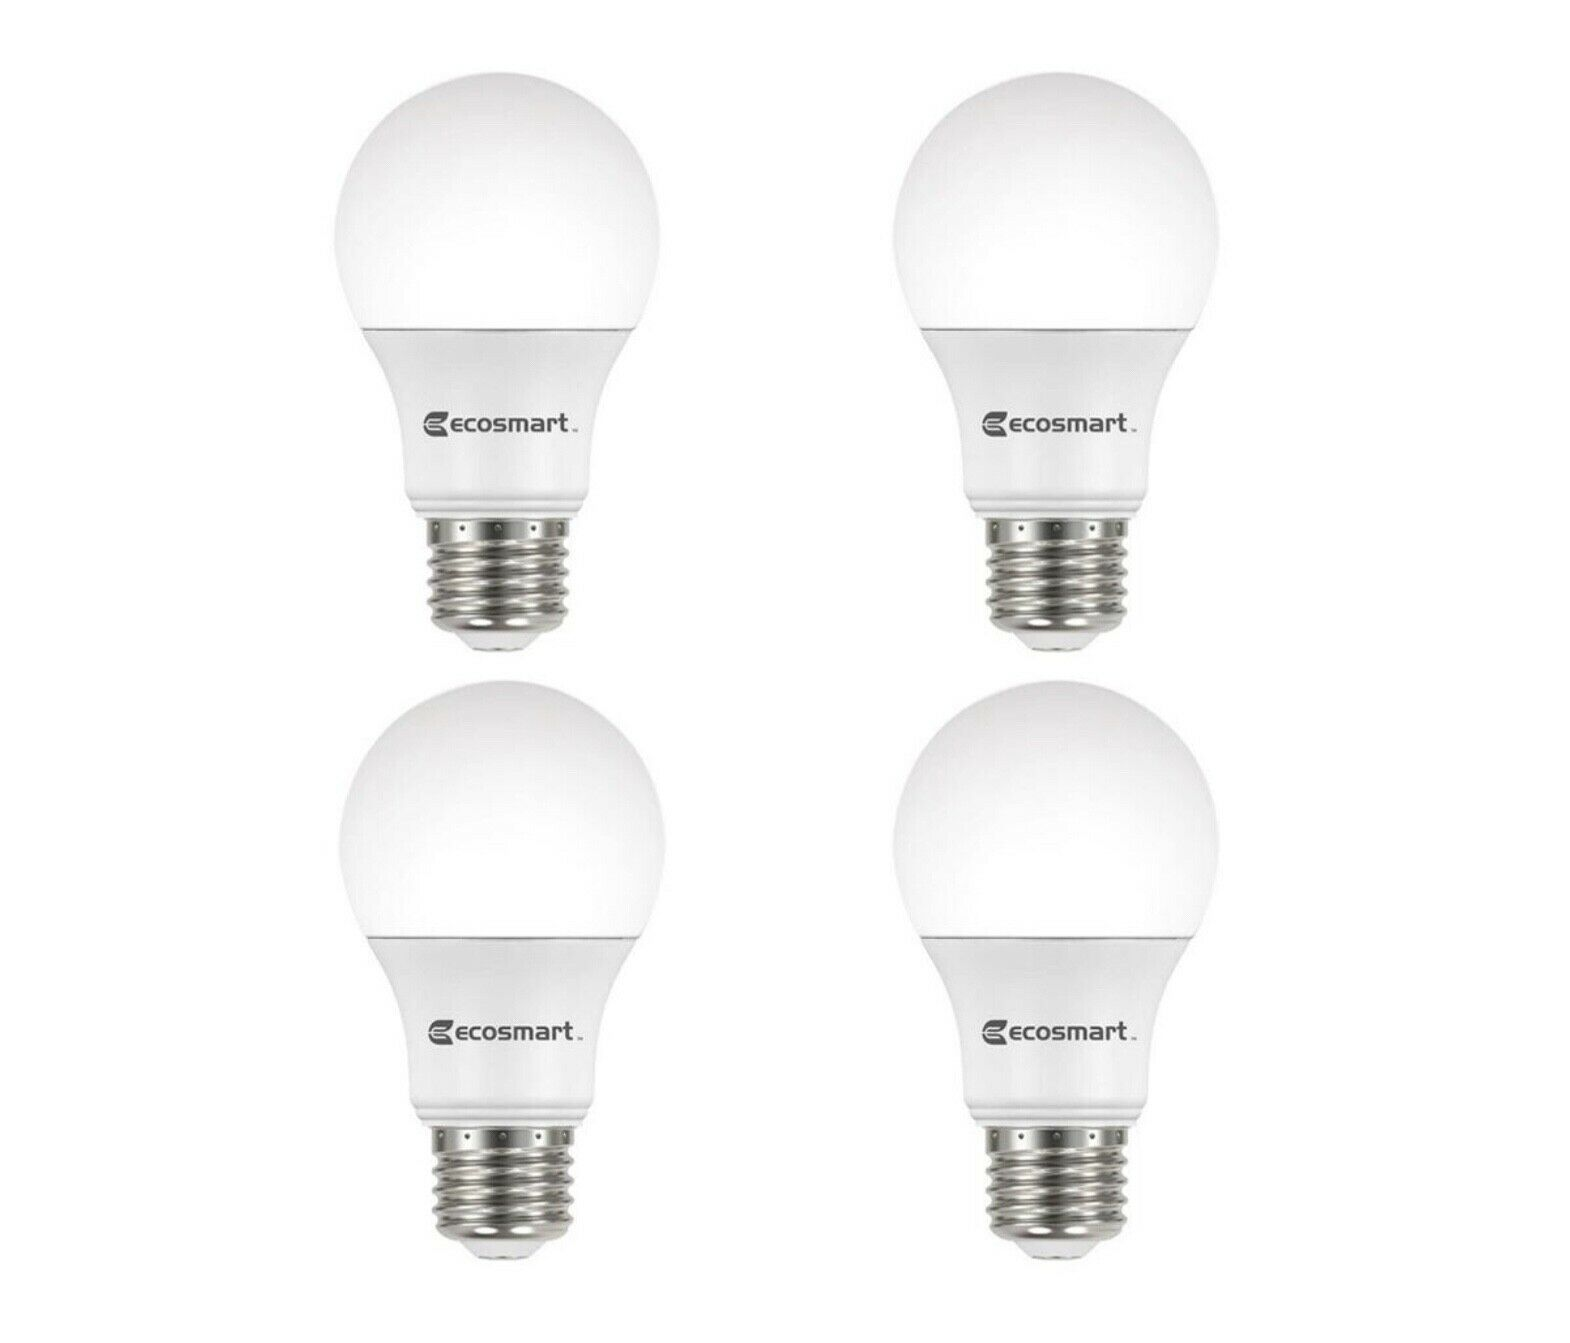 Primary image for EcoSmart 60-Watt Equivalent A19 Dimmable LED Light Bulb Daylight (4-Pack)